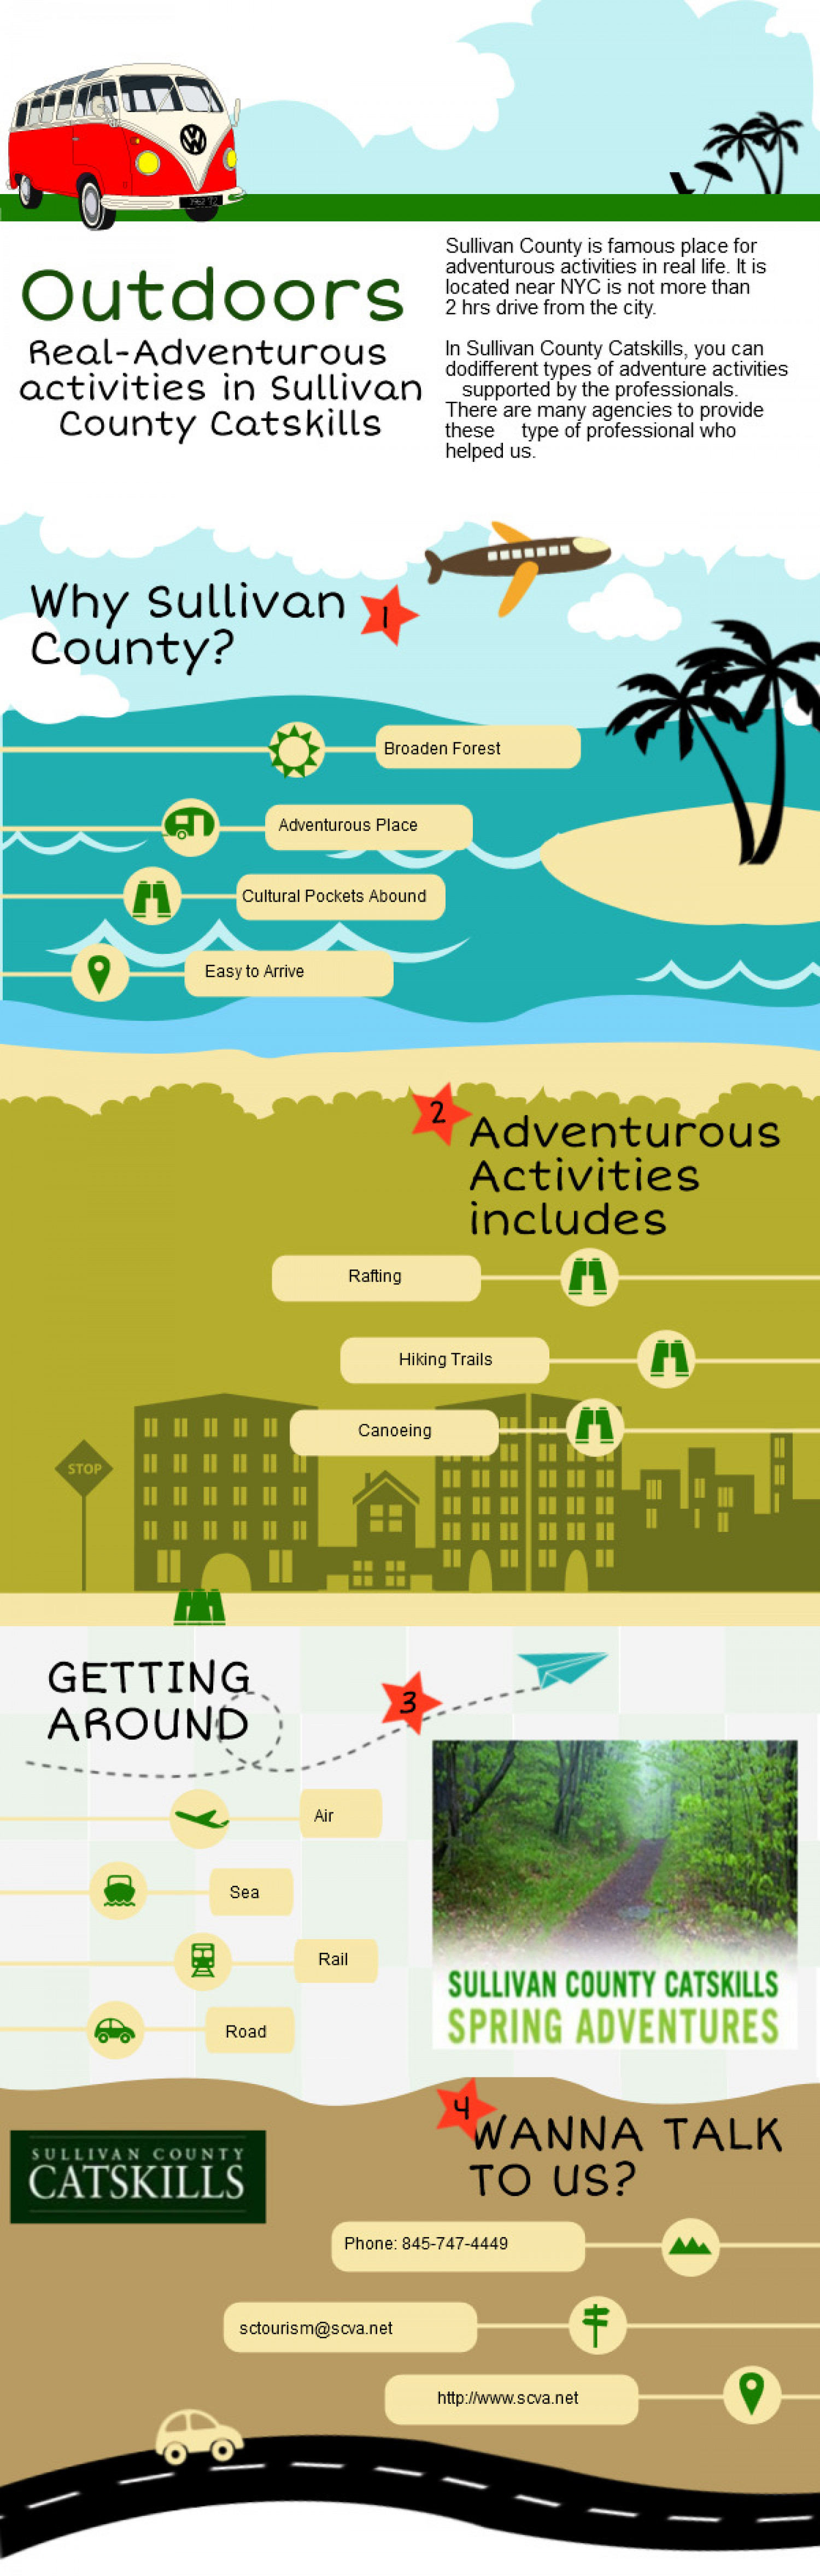 Outdoors Real-Adventurous Activities in Sullivan County Catskills Infographic